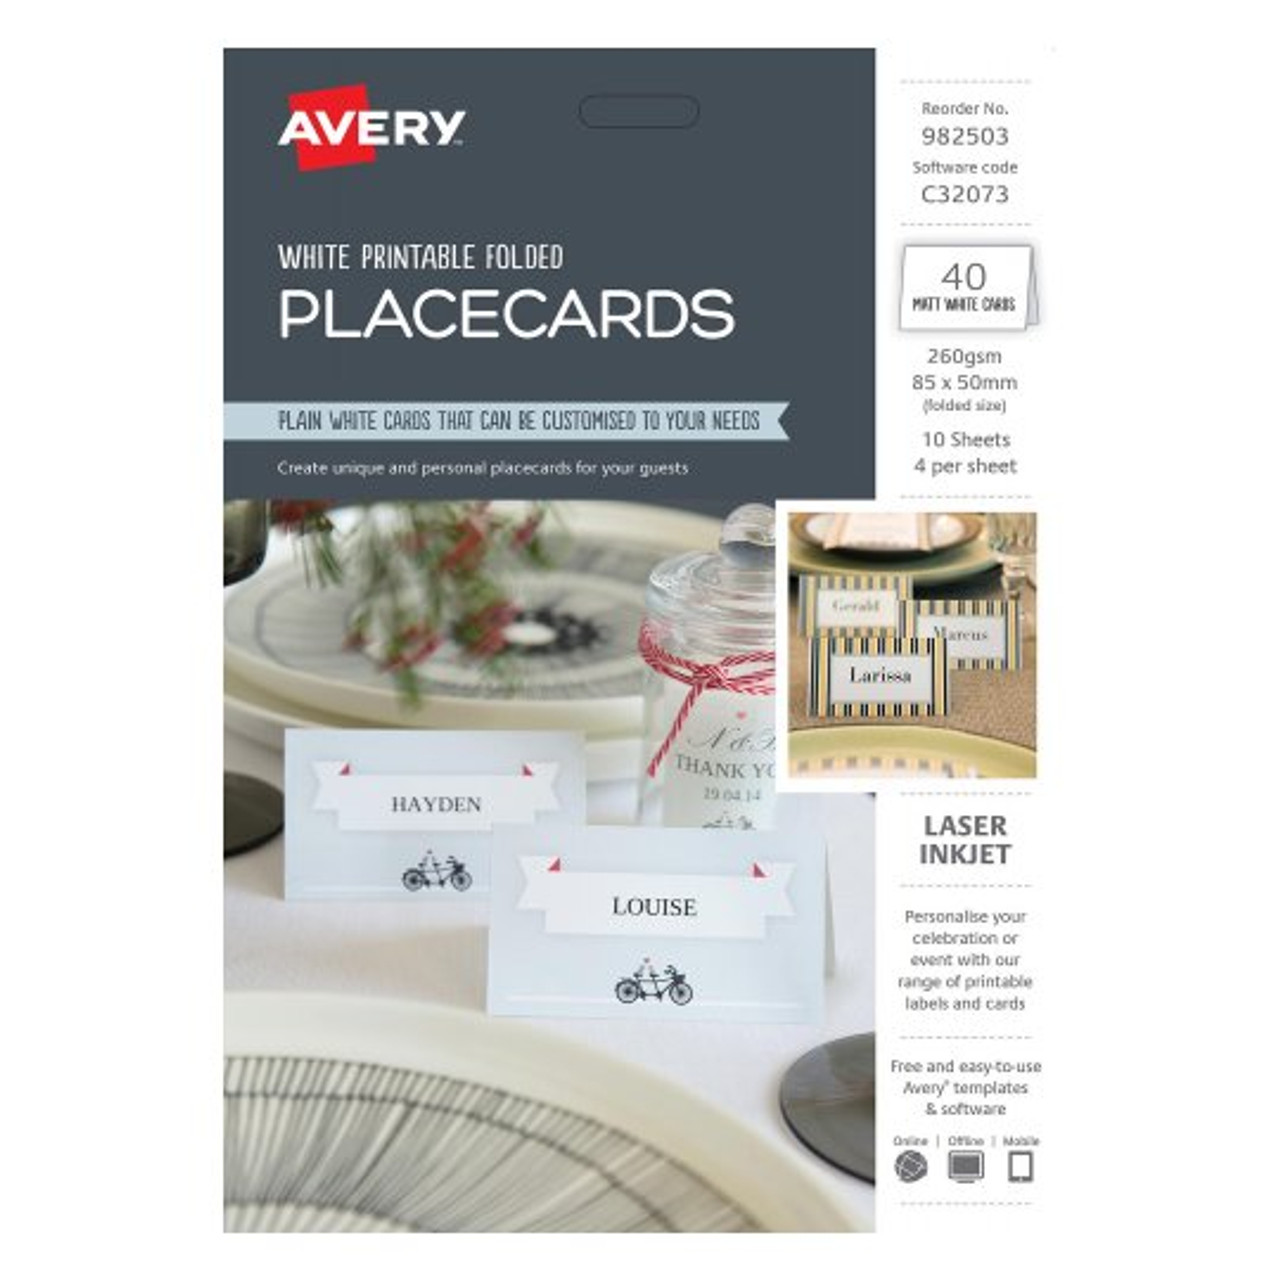 graphic relating to Avery Printable Place Cards titled AVERY 982503 FOLDED Destination Playing cards C32073 85 X 50 PACK 40 4UP